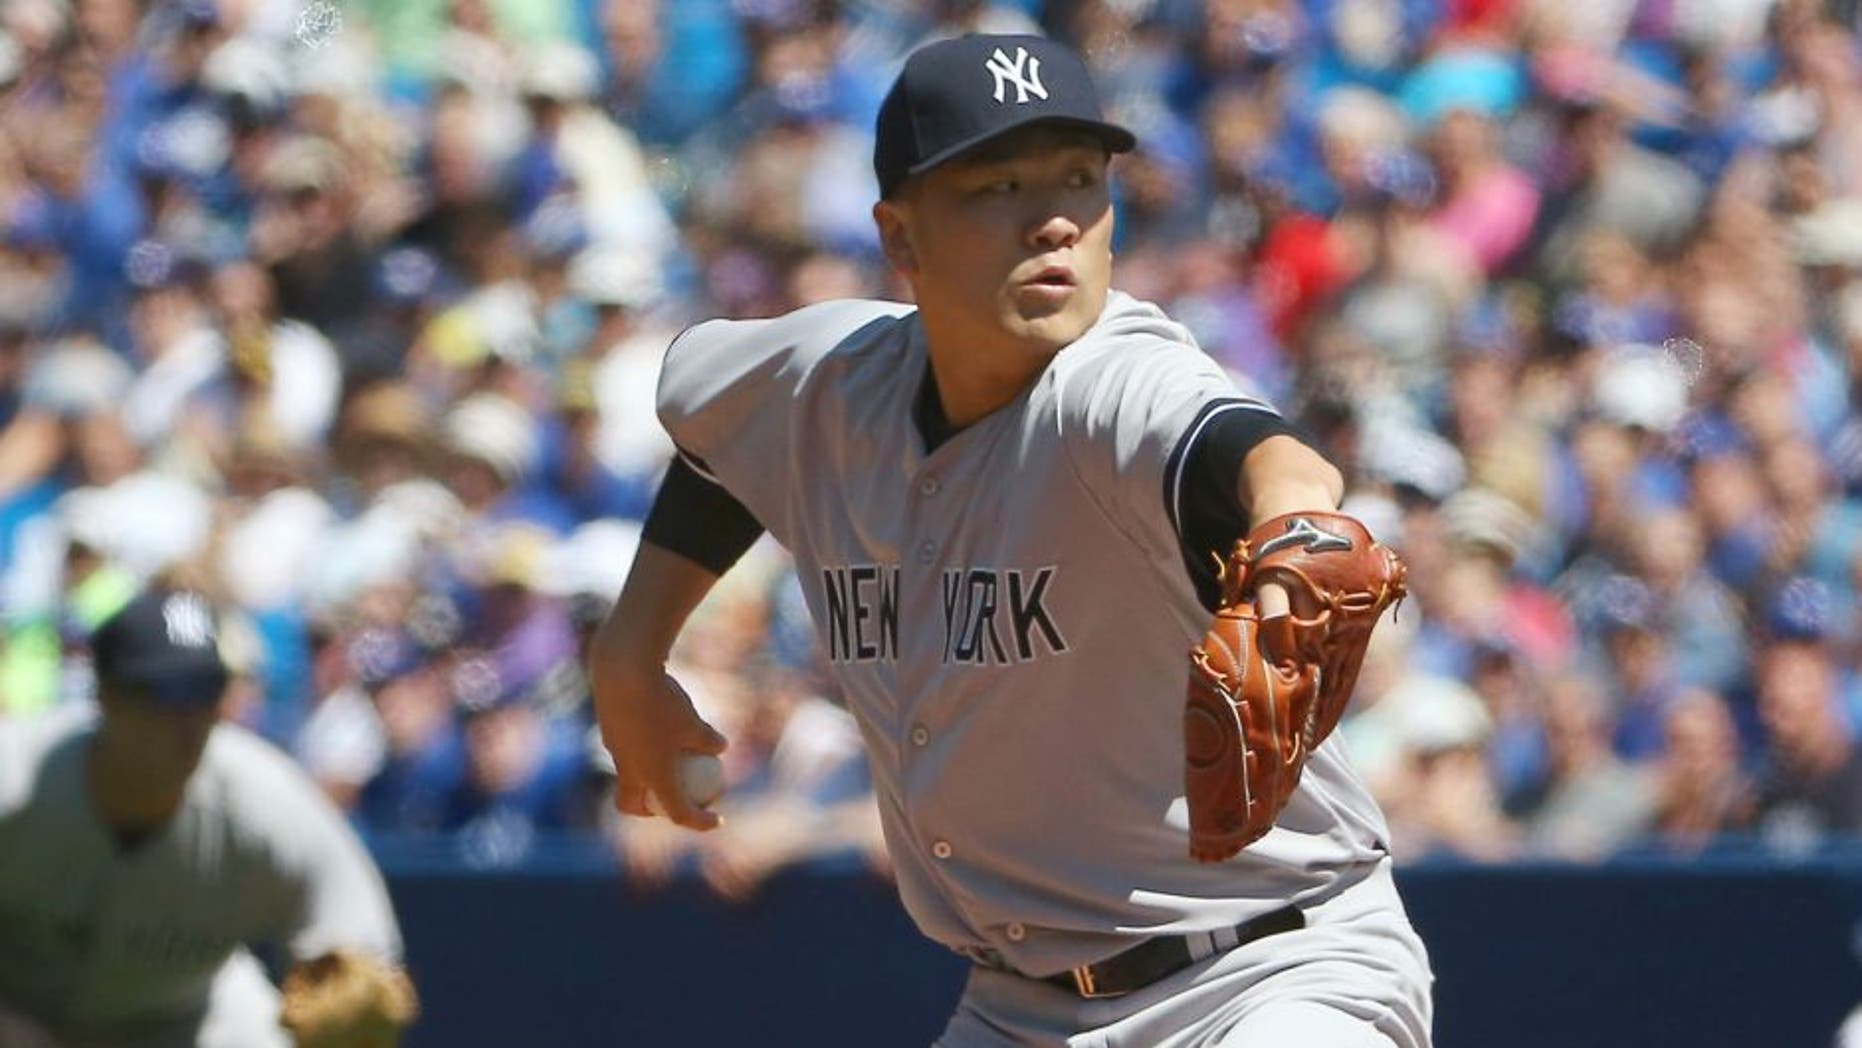 Masahiro Tanaka #19 of the New York Yankees delivers a pitch in the first inning during MLB game action against the Toronto Blue Jays on August 15, 2015 at Rogers Centre in Toronto, Ontario, Canada. (Photo by Tom Szczerbowski/Getty Images)